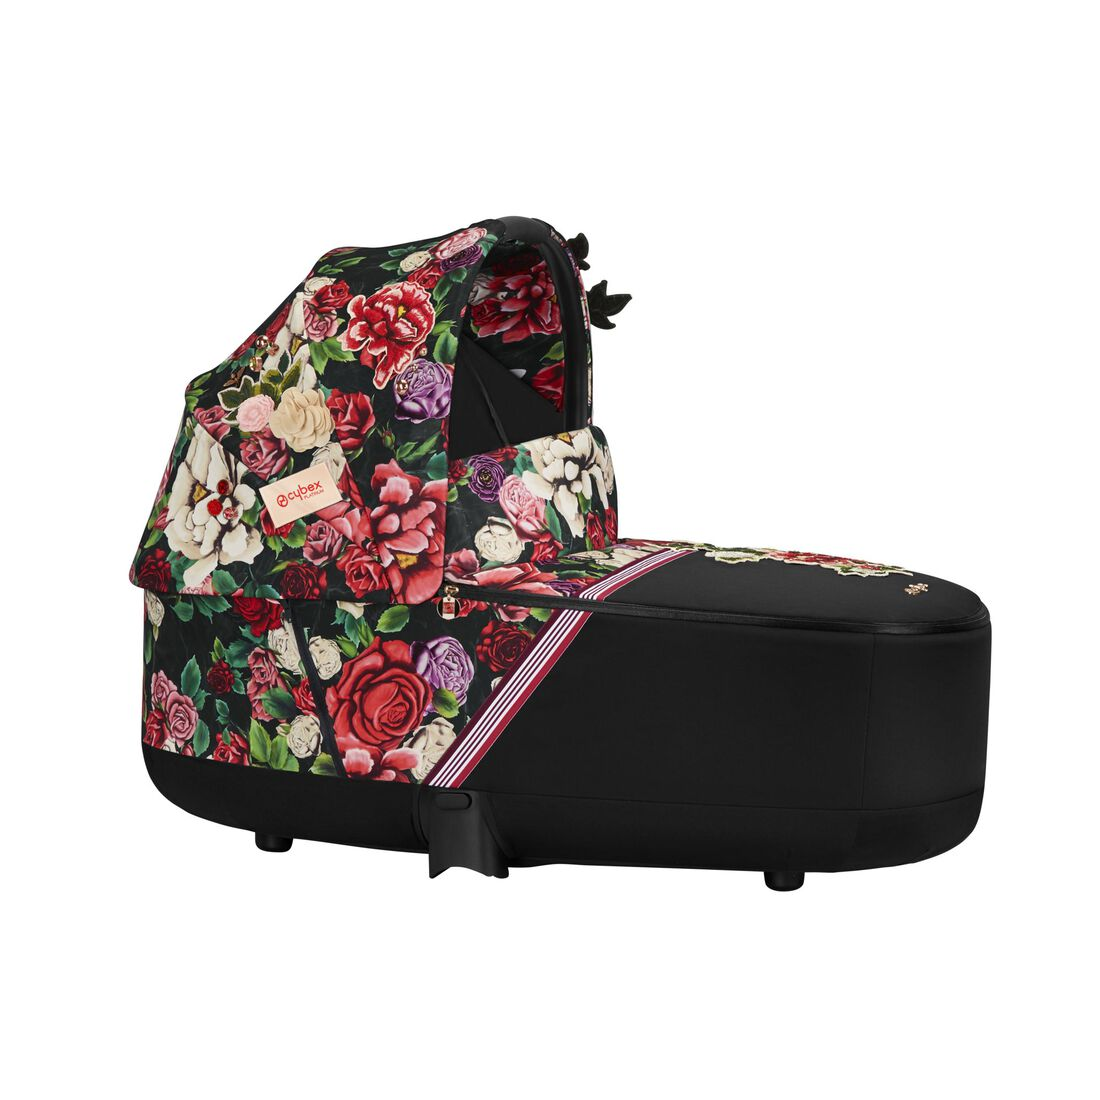 CYBEX Priam Lux Carry Cot - Spring Blossom Dark in Spring Blossom Dark large image number 1